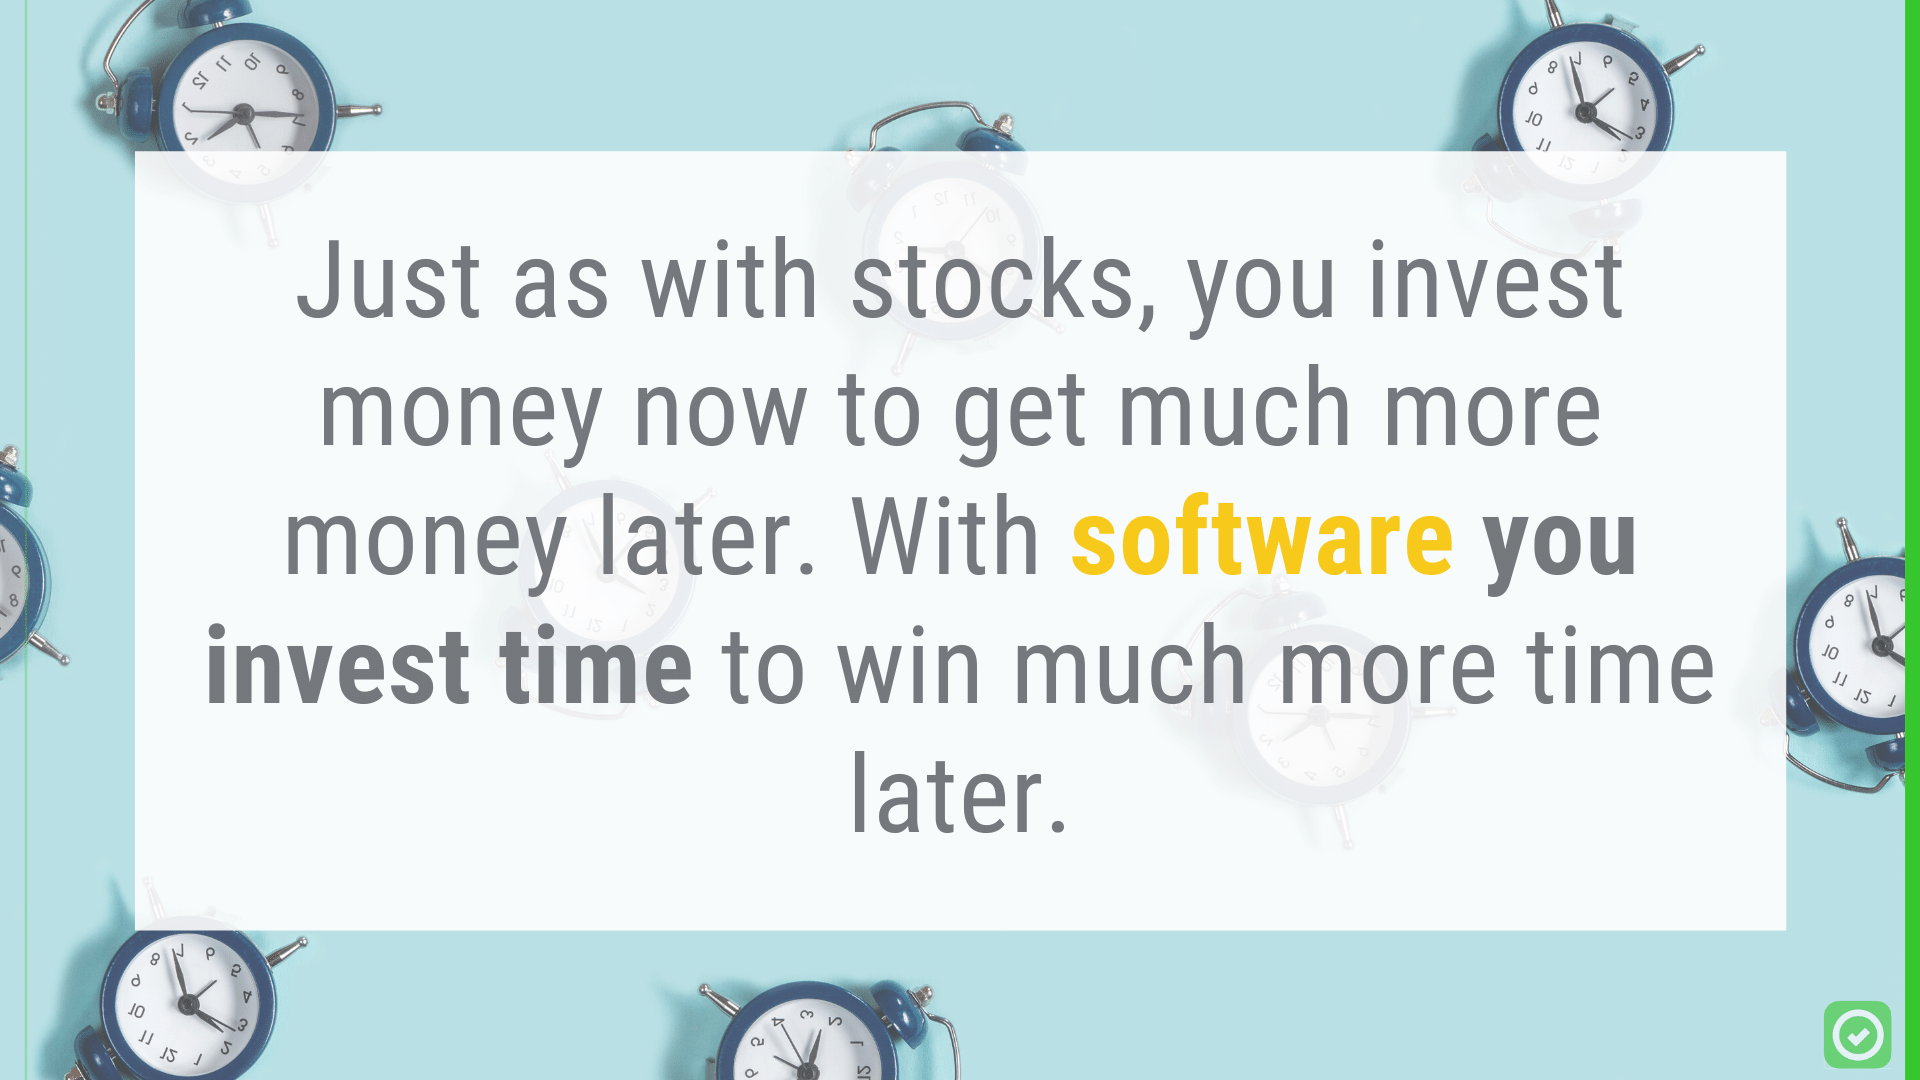 Just as with stocks, you invest money now to get much more money later. With software, you invest time to win much more time later. | ArchiSnapper